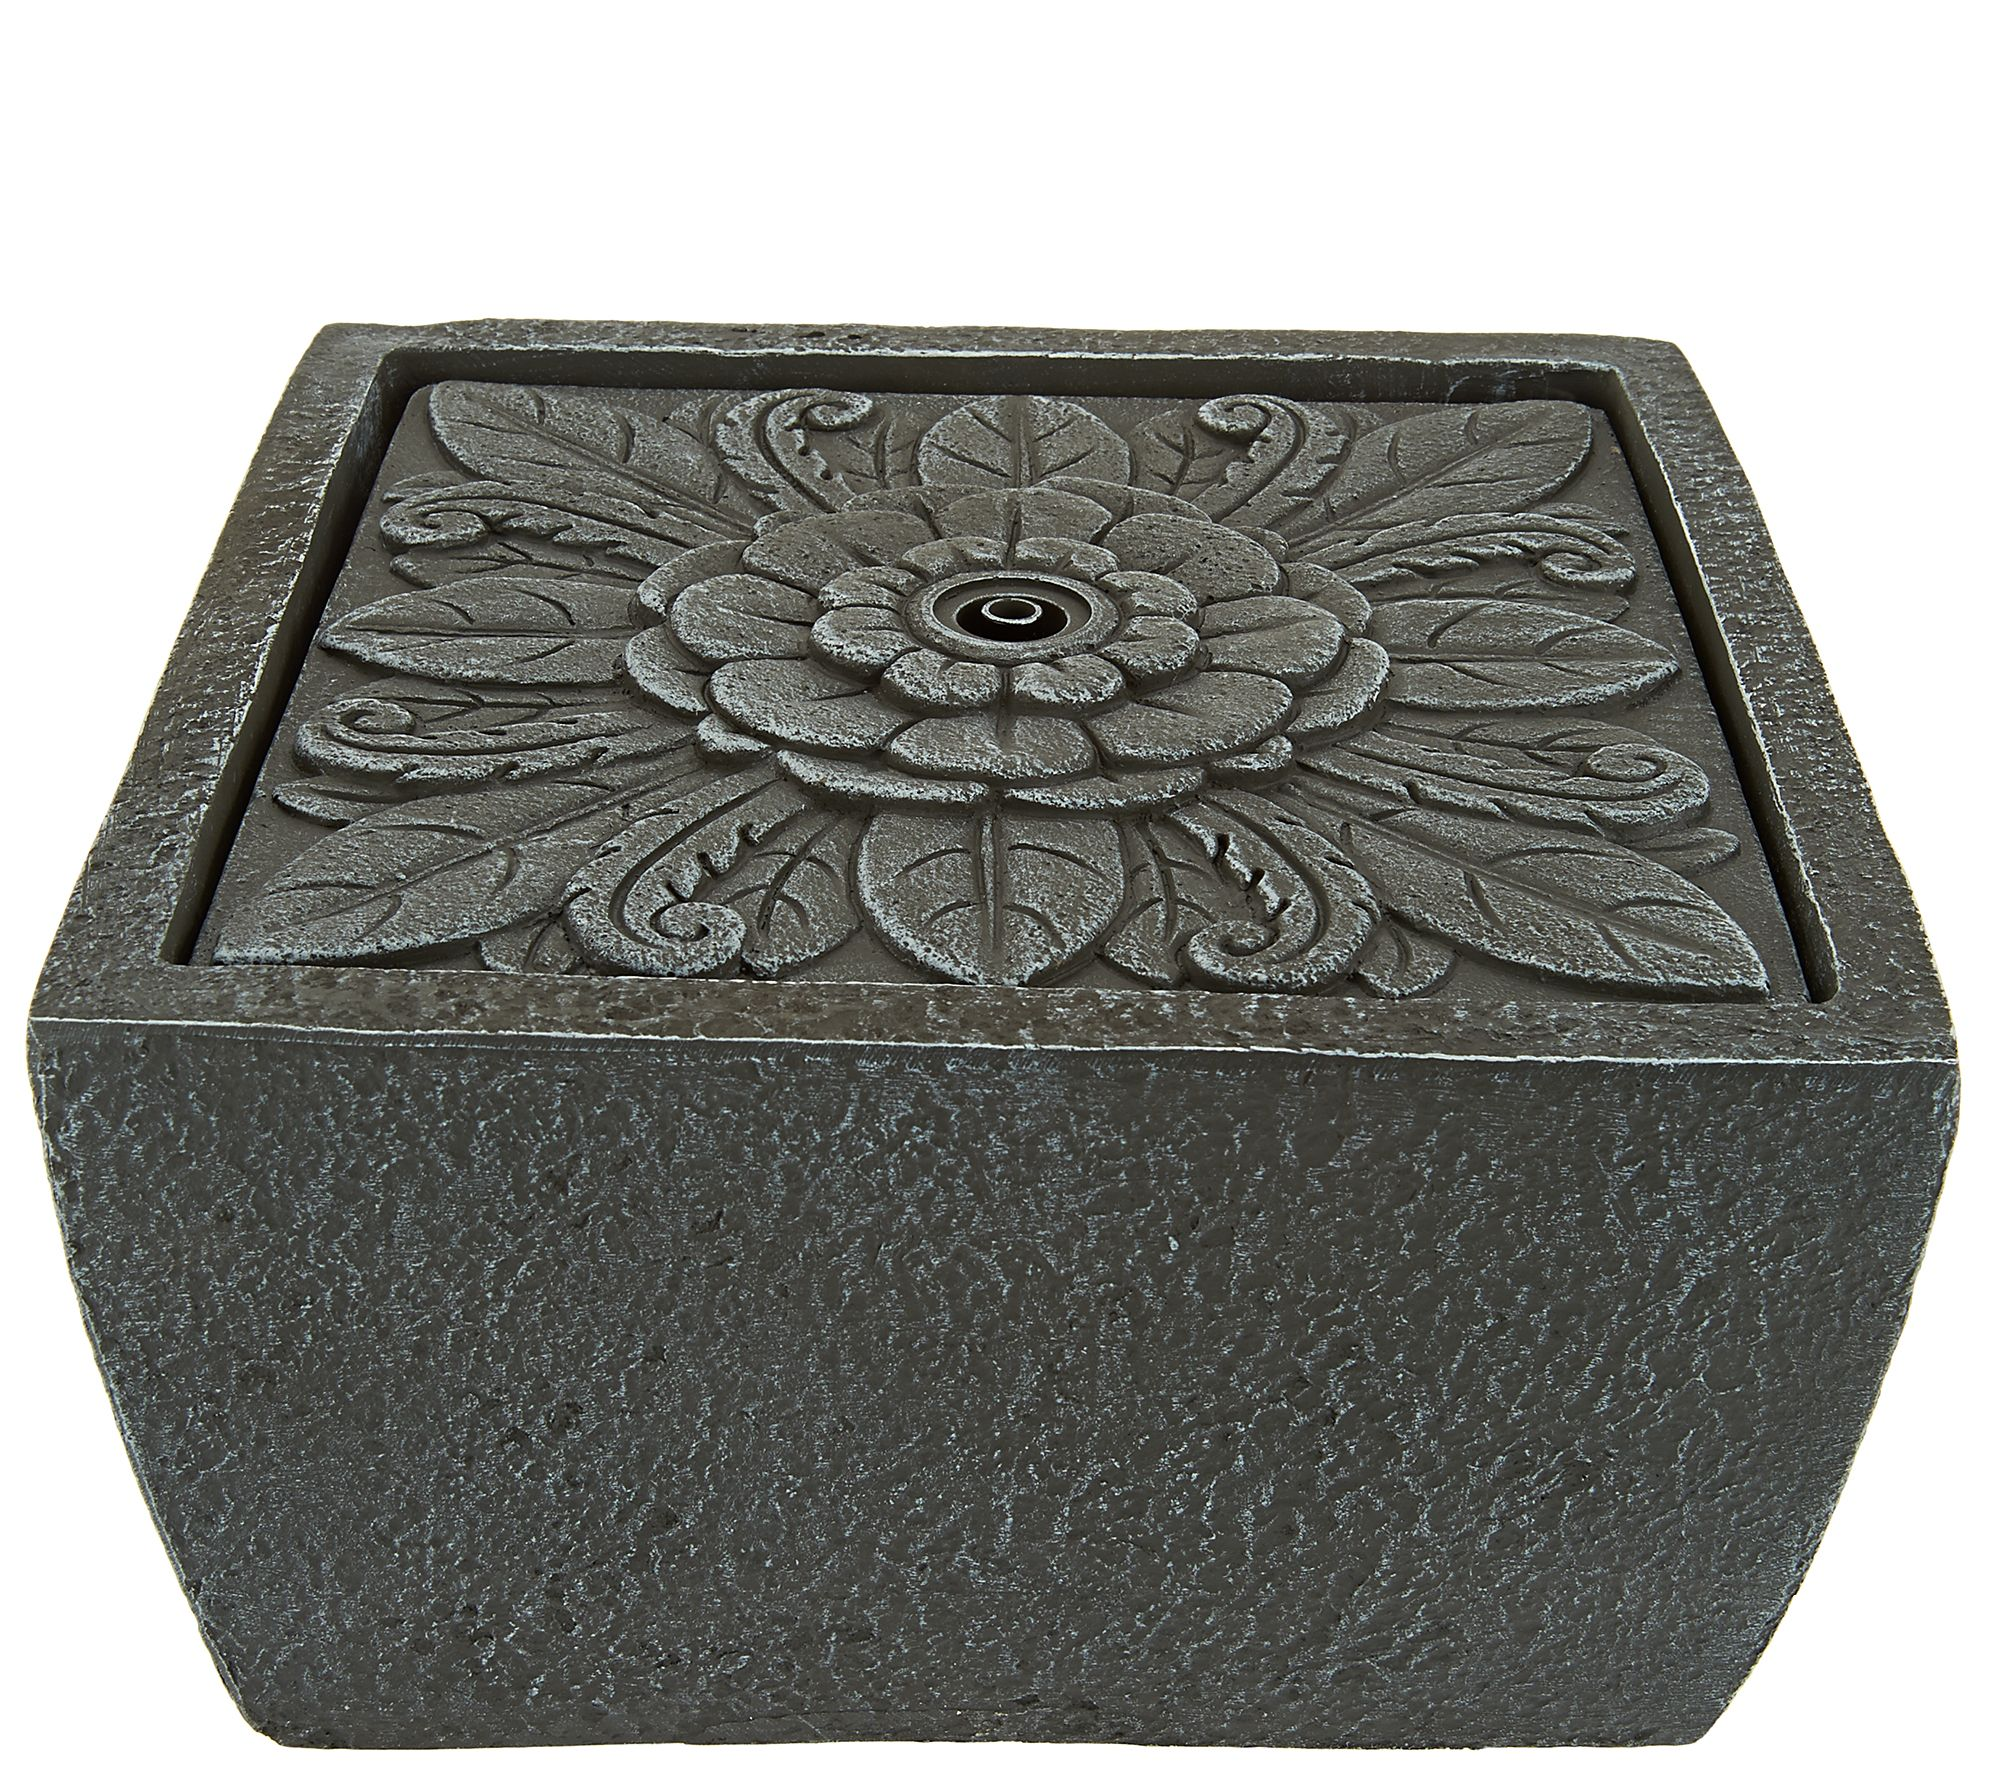 ED OnAir Tavolo Floral Sq. Tabletop Fountain Ellen DeGeneres